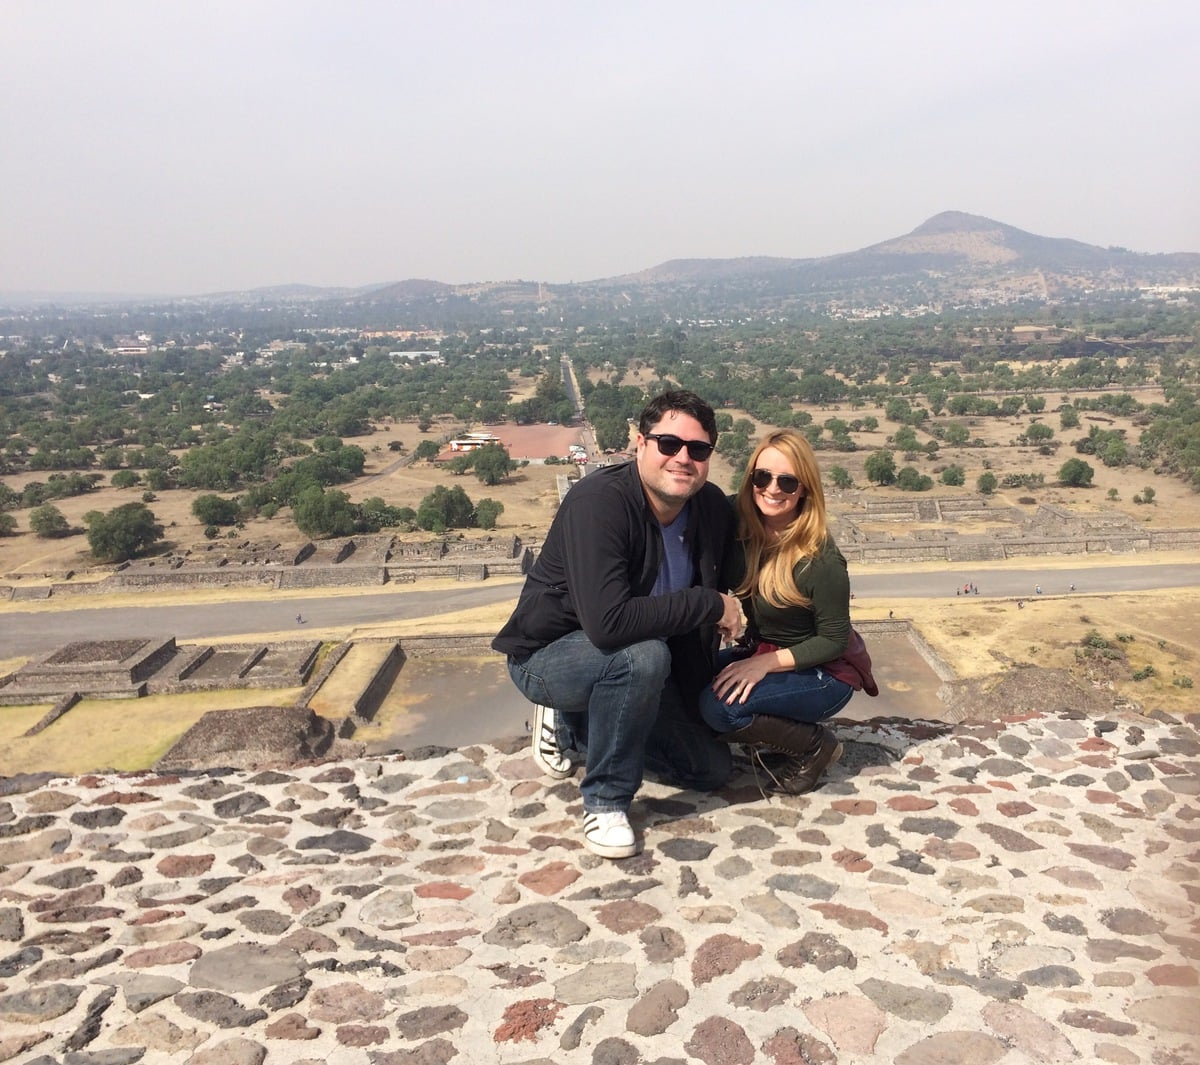 At the Teotihuacan Pyramids in Mexico City